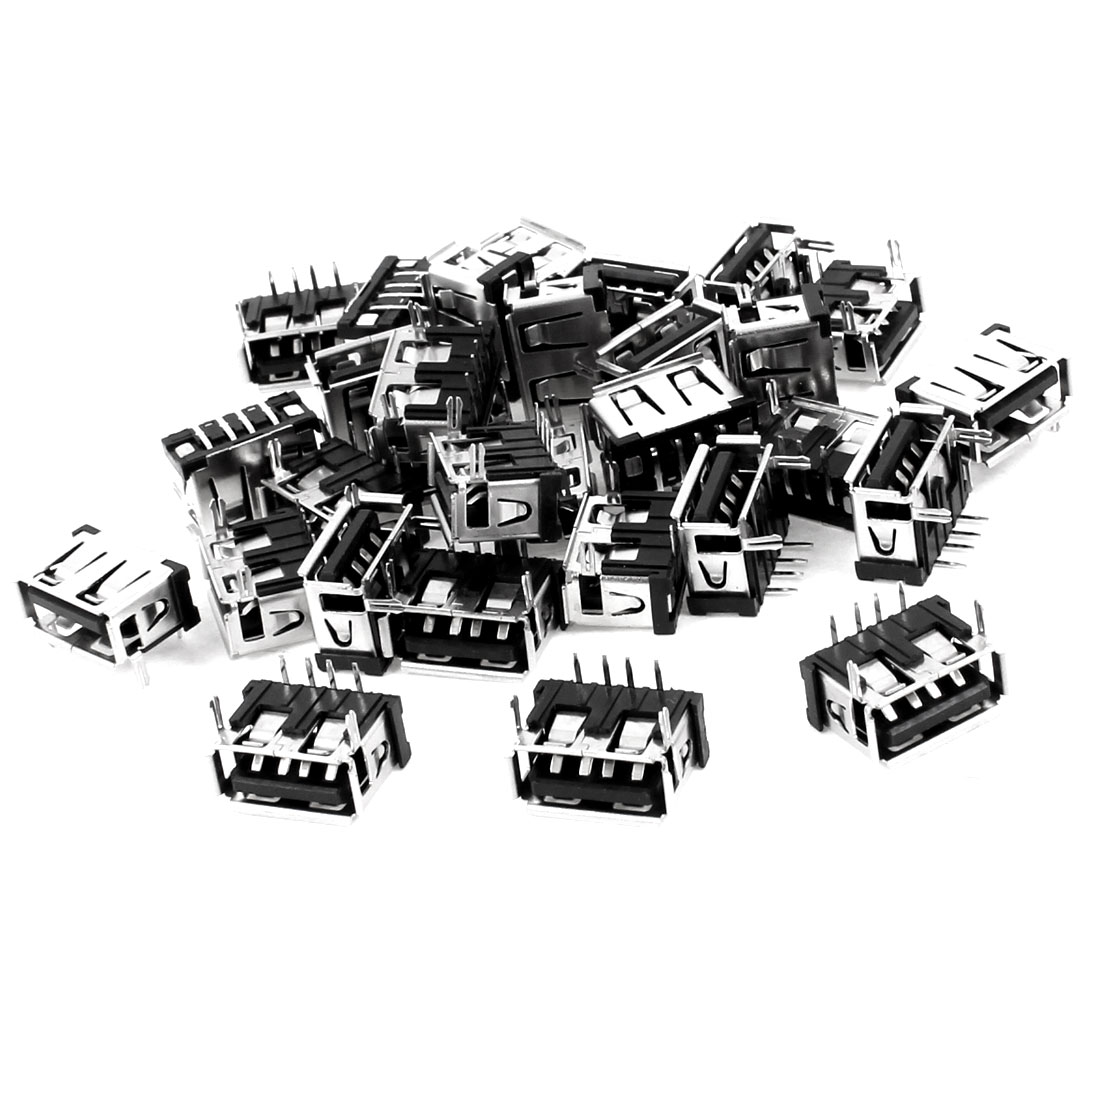 30 Pcs Single USB Type A 90 Degree 4-Pin DIP Female Jack Connector